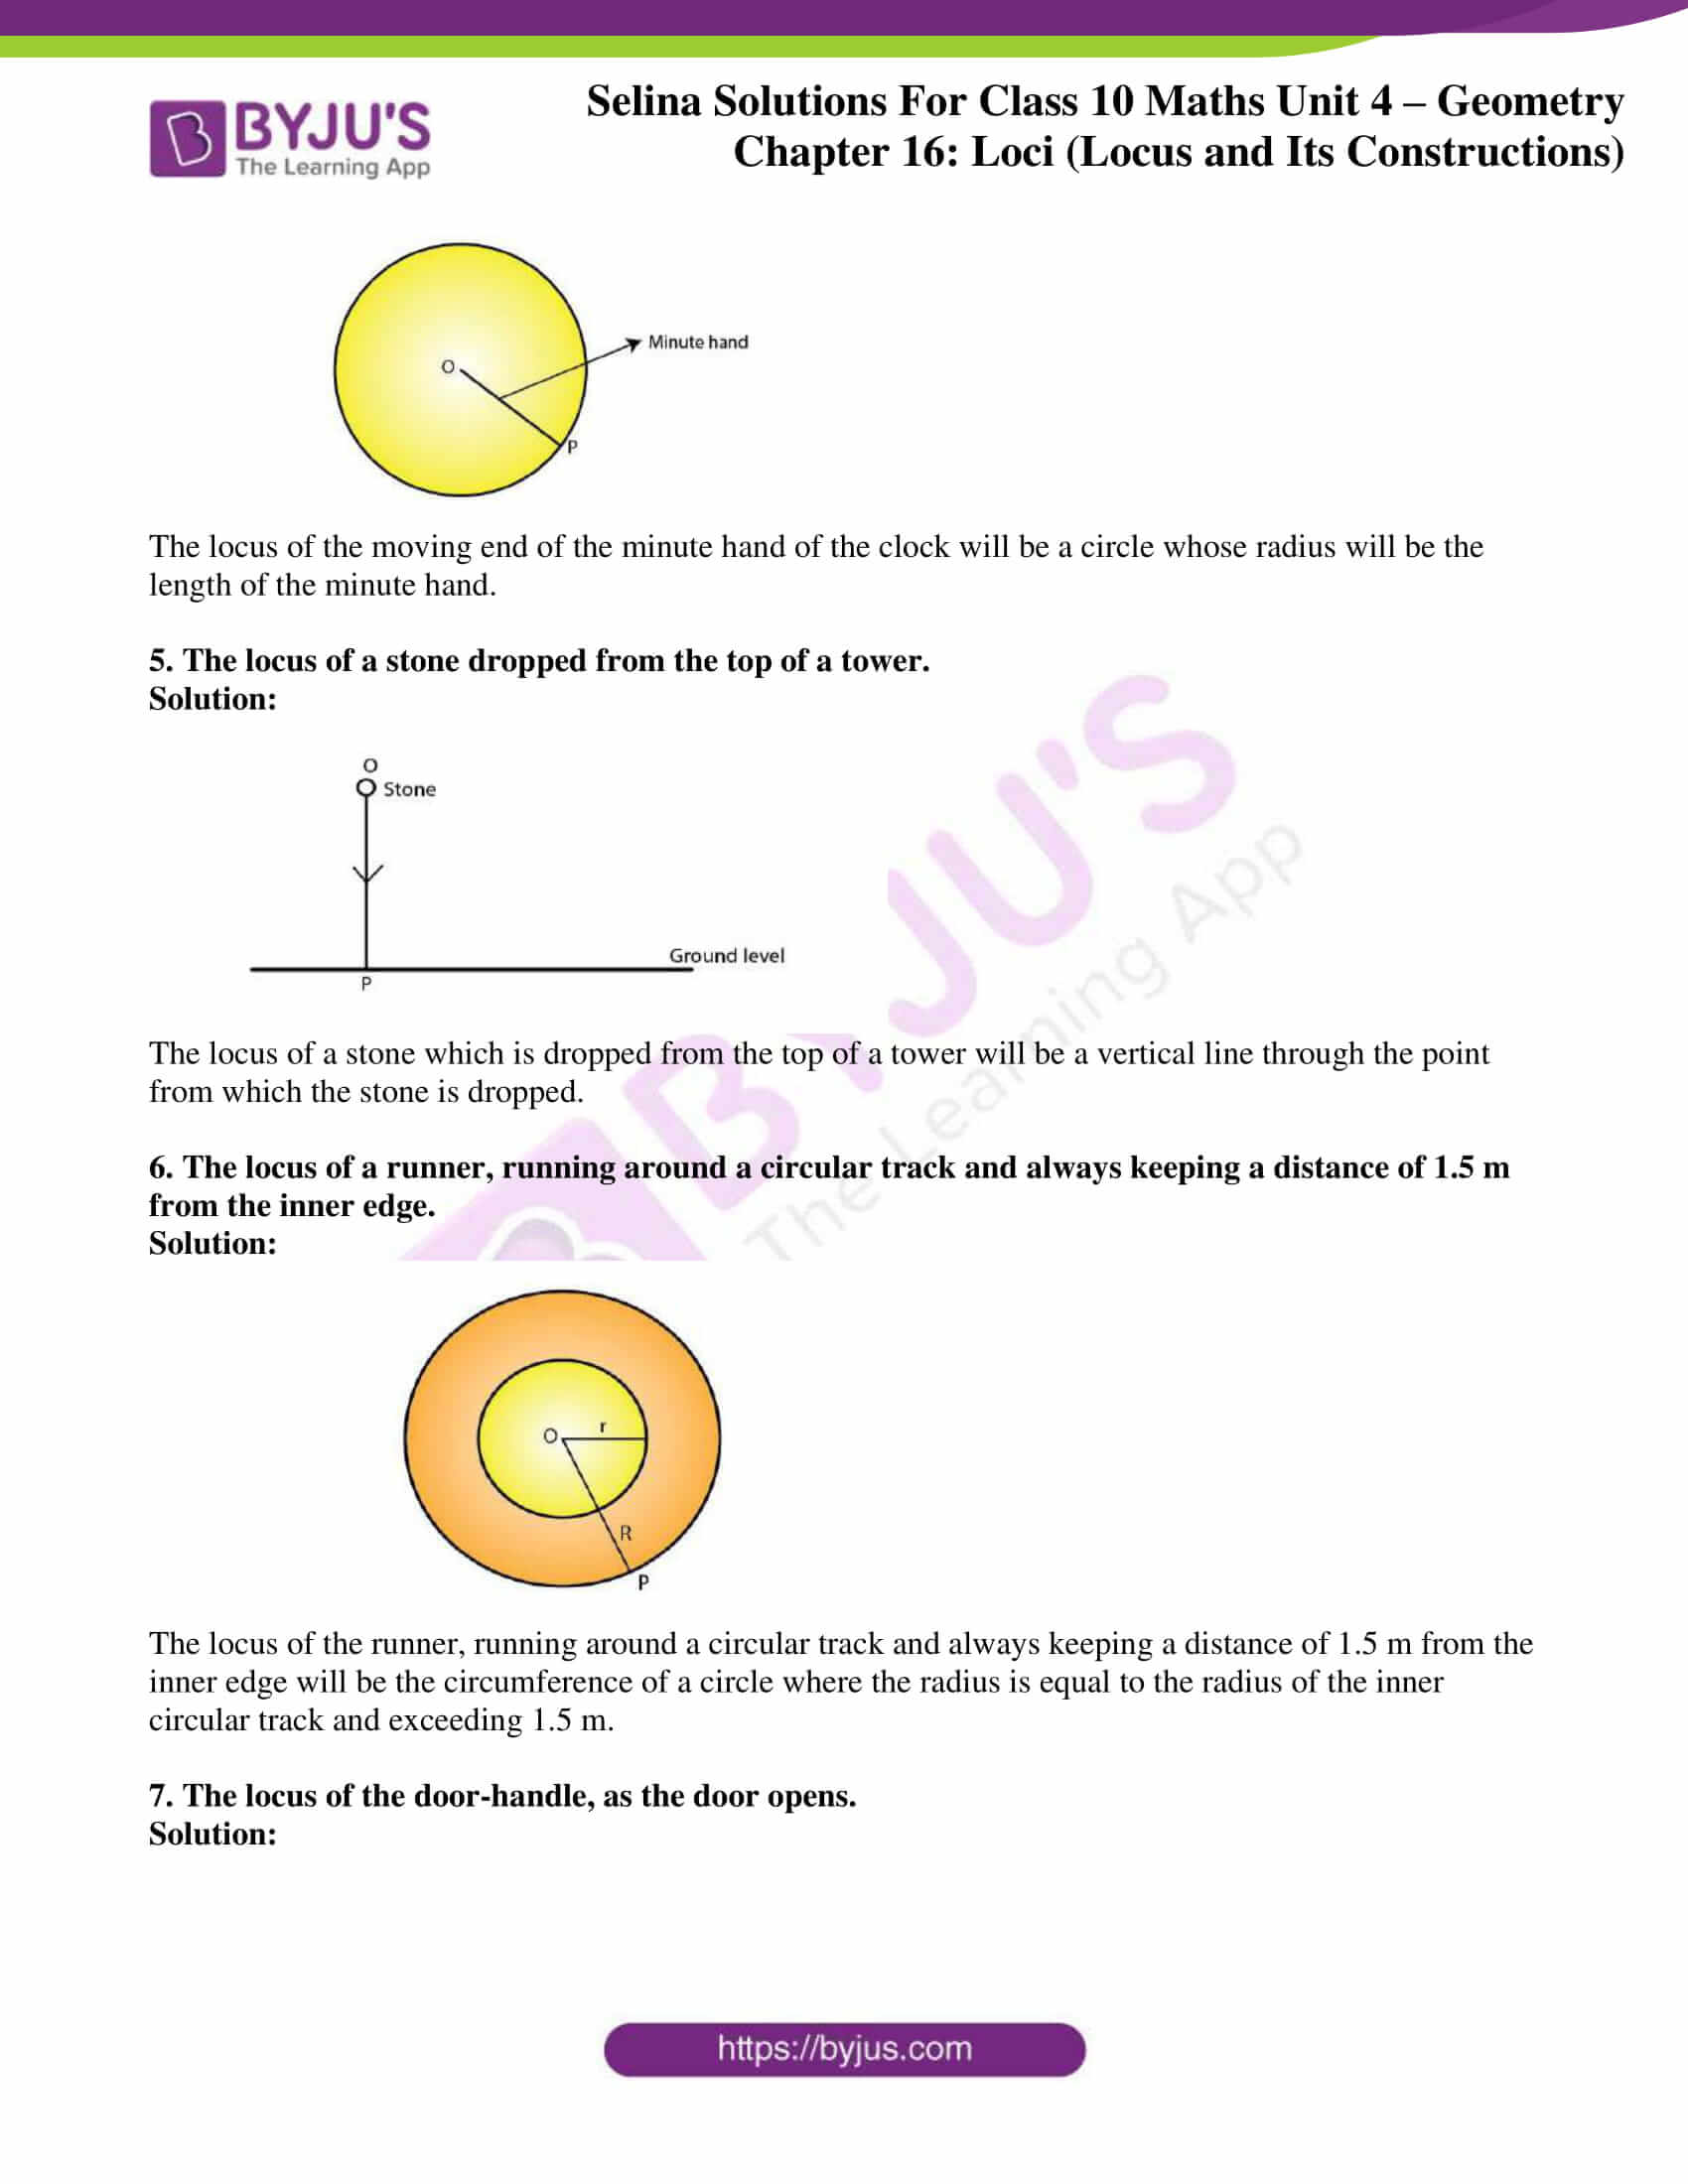 selina solution concise maths class 10 chapter 16 ex b 2